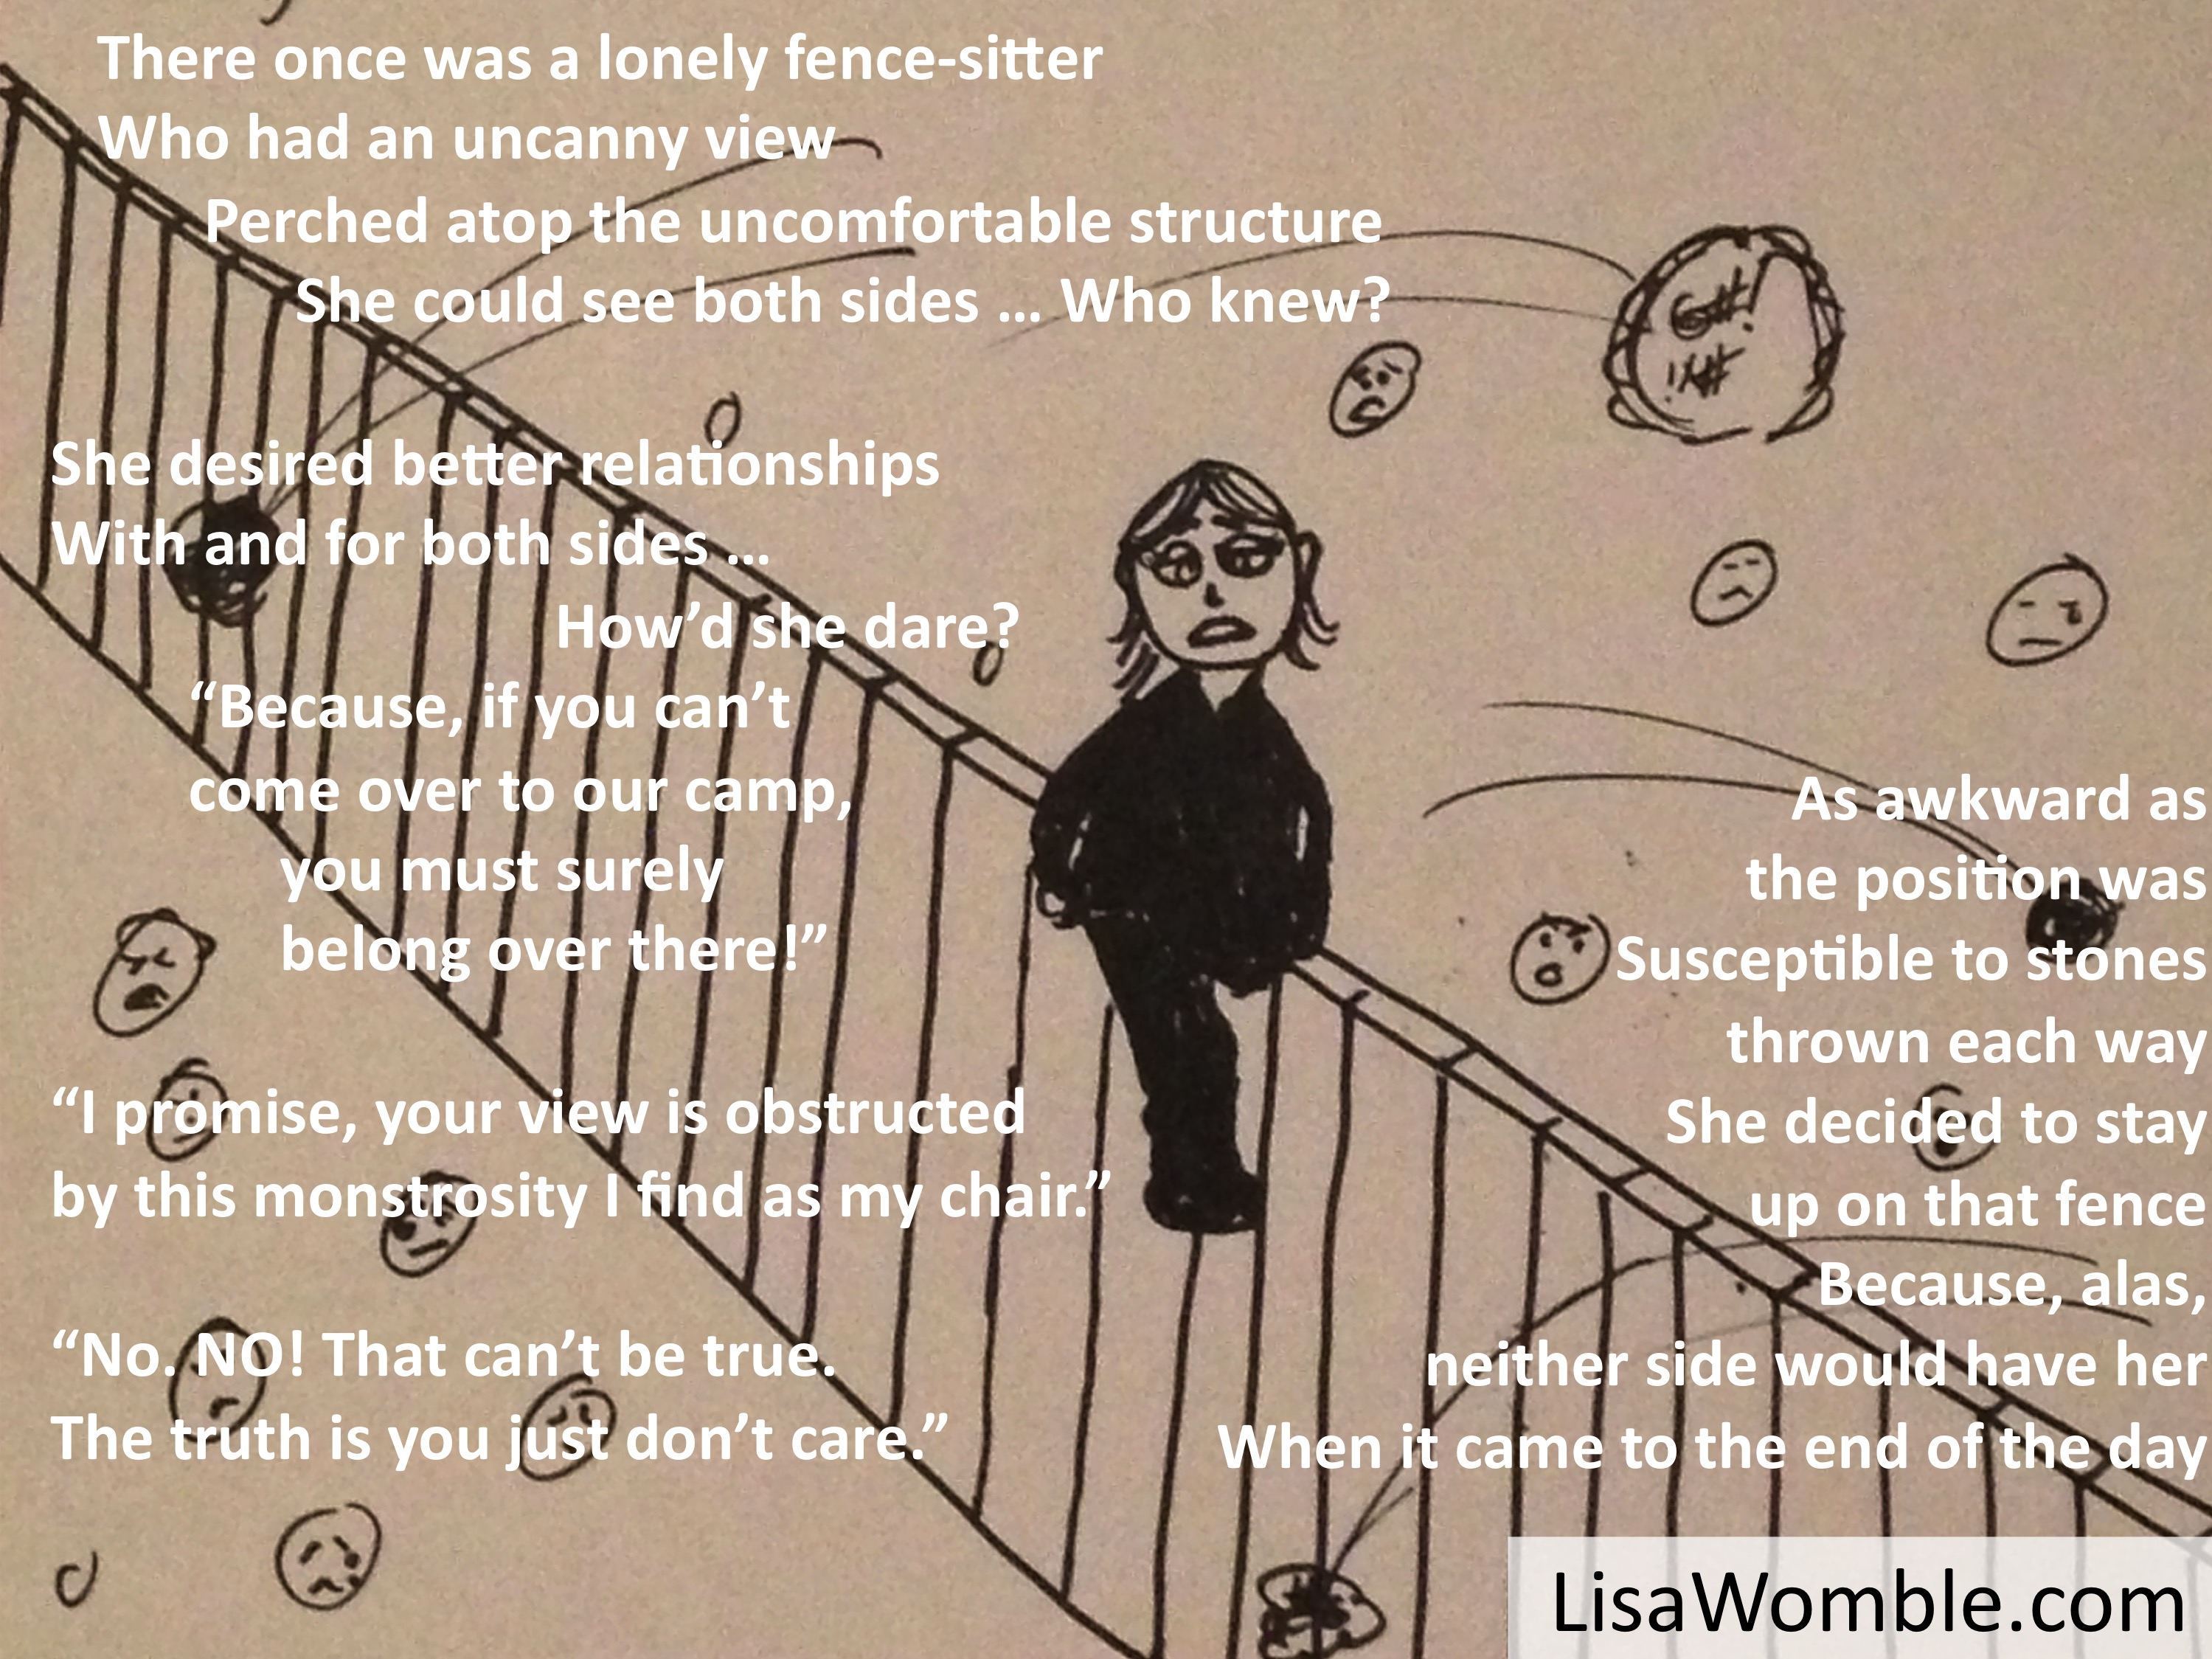 The Lonely Fence-Sitter